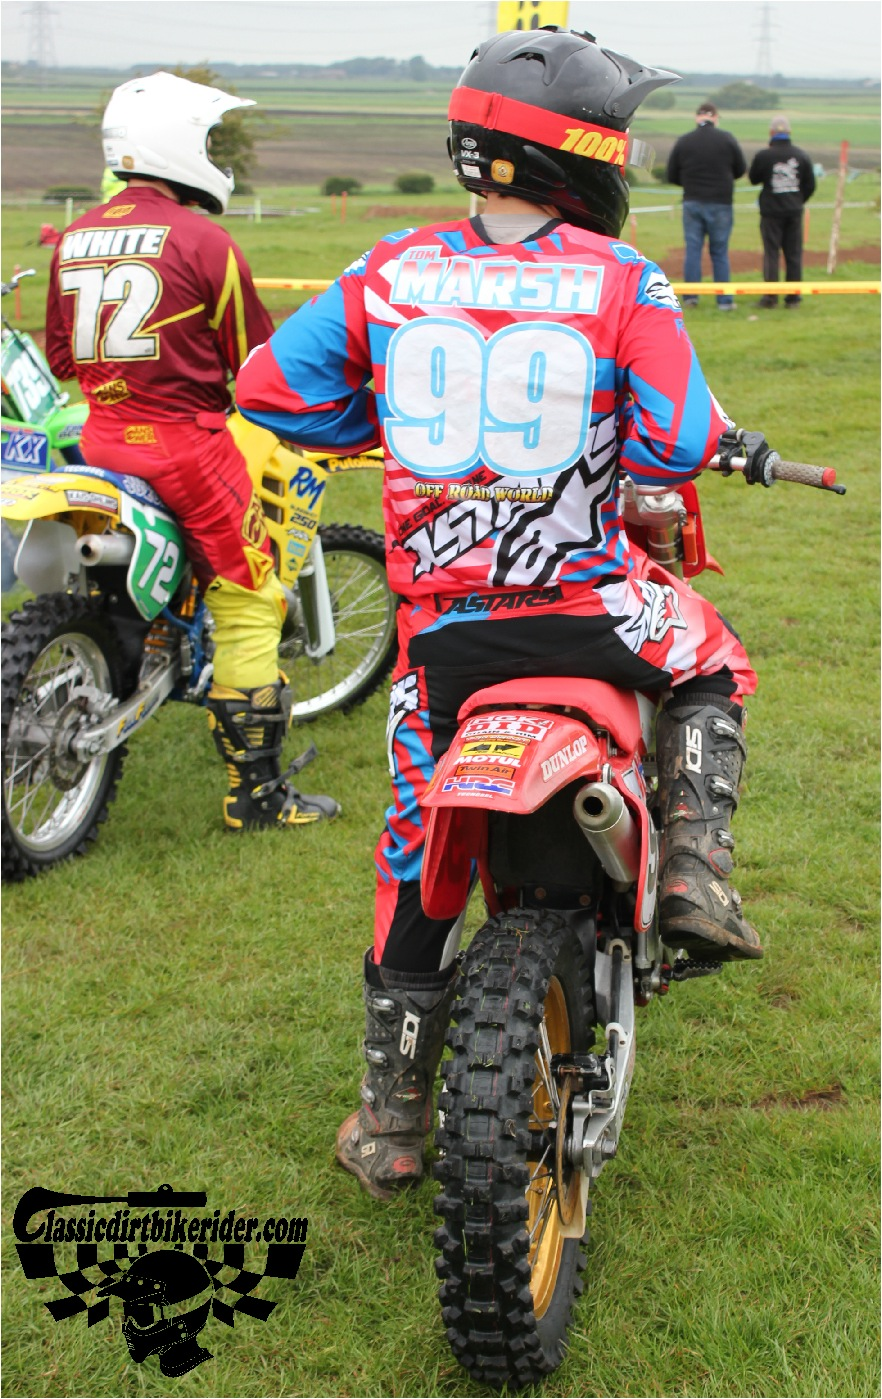 classicdirtbikerider.com-national-twinshock-championship-2015-Garstang-riders get ready for practice 7